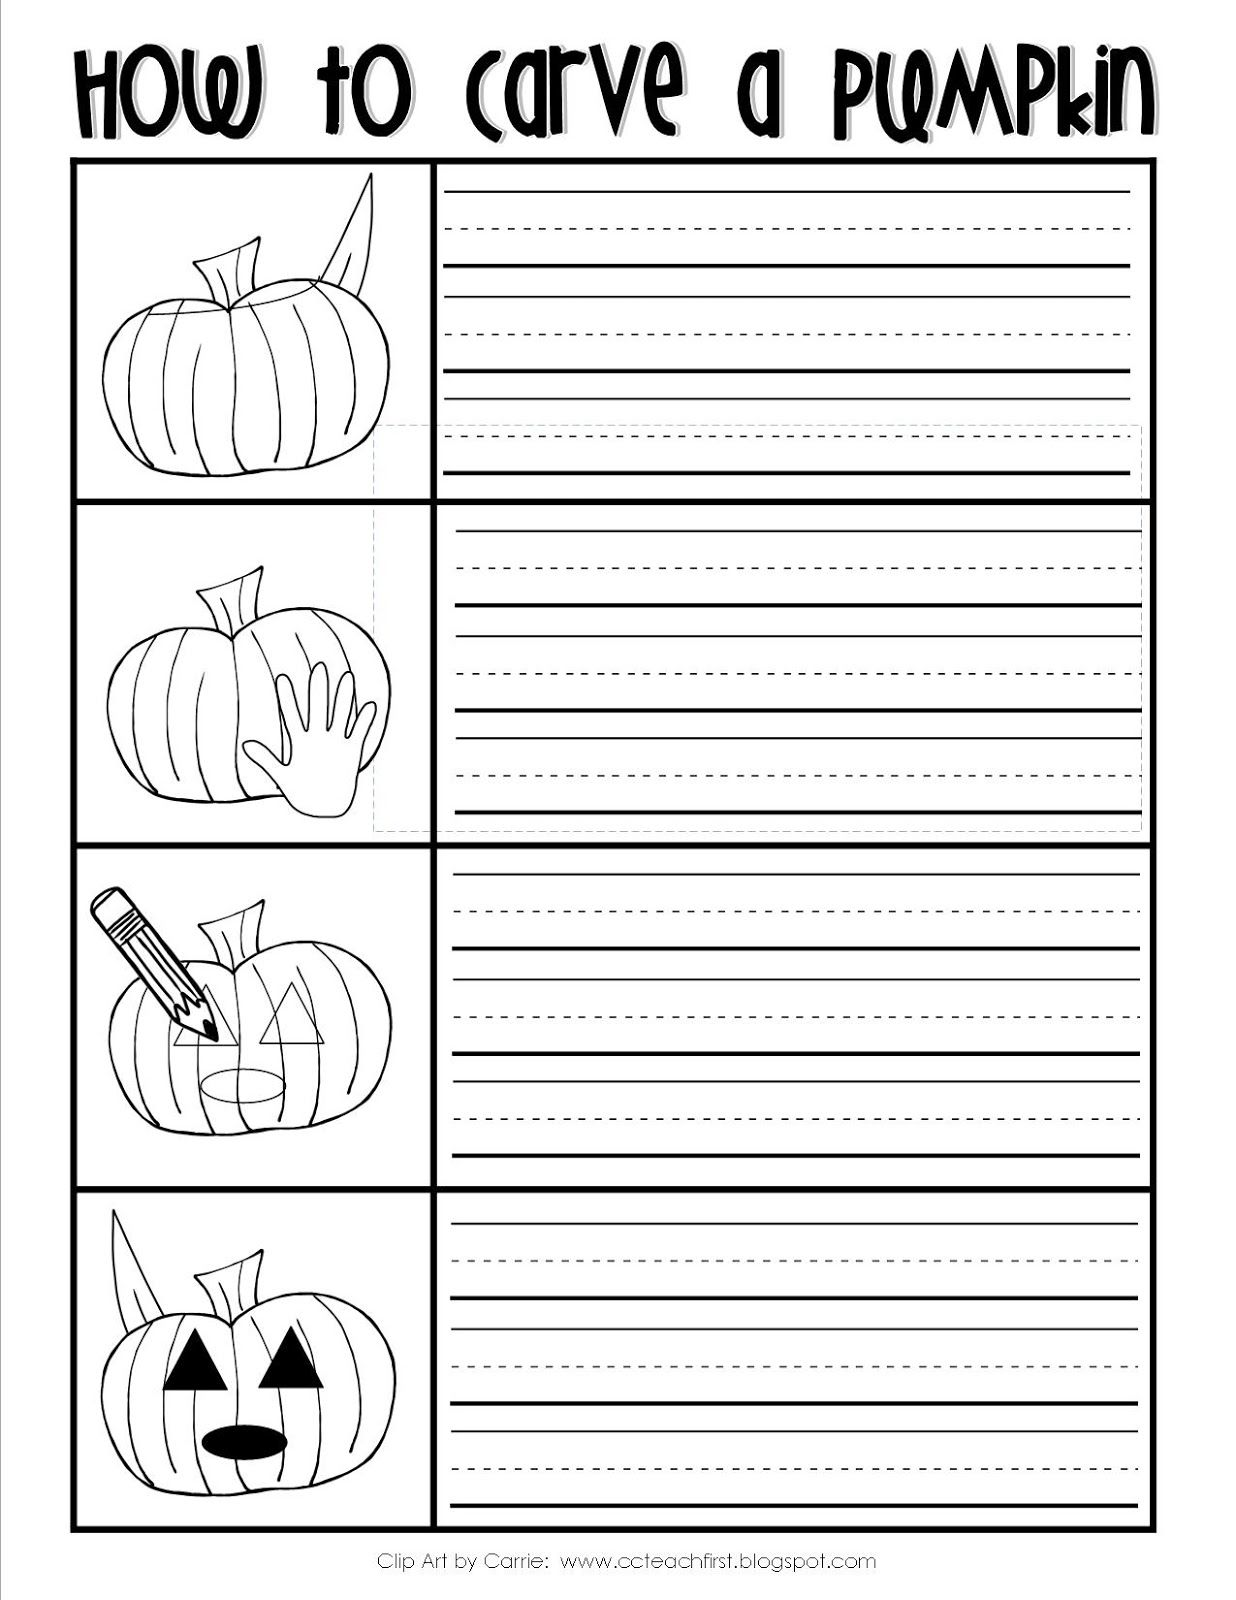 How To Carve A Pumpkin Writing Sheet Freebie By C Amp C Teach First Teachfirstspot